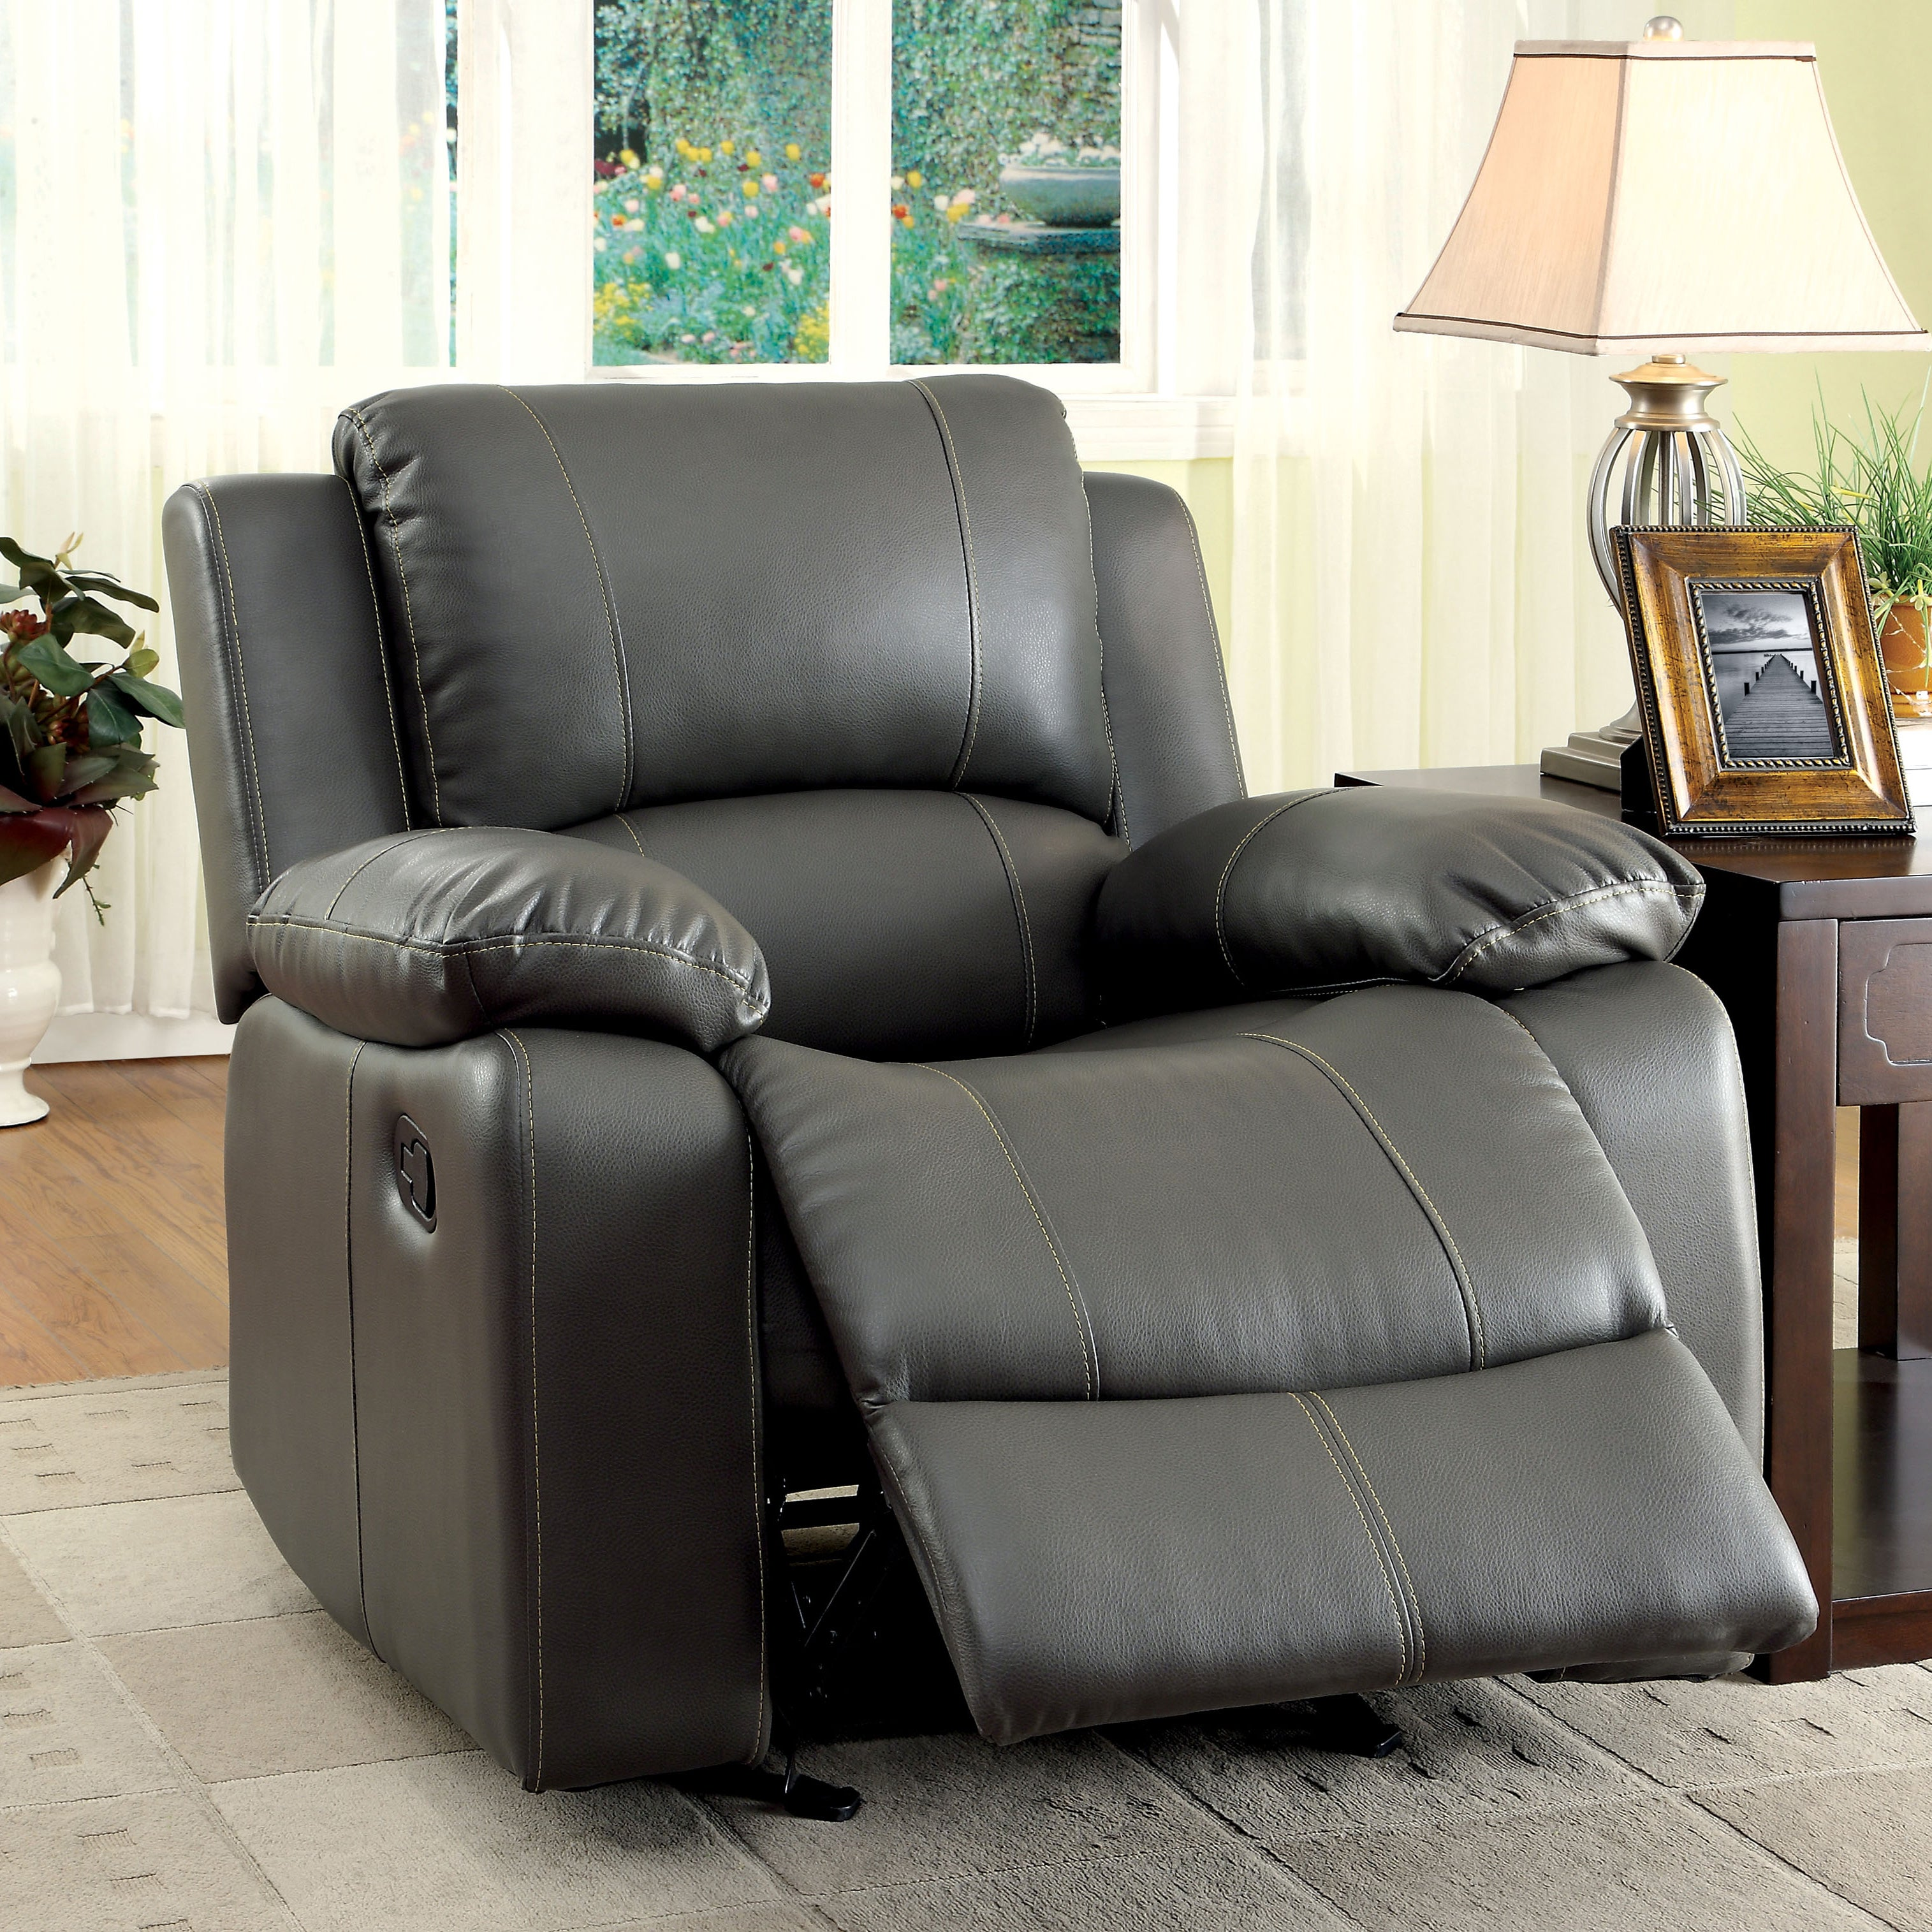 Furniture of America Rembren Grey Bonded Leather Recliner